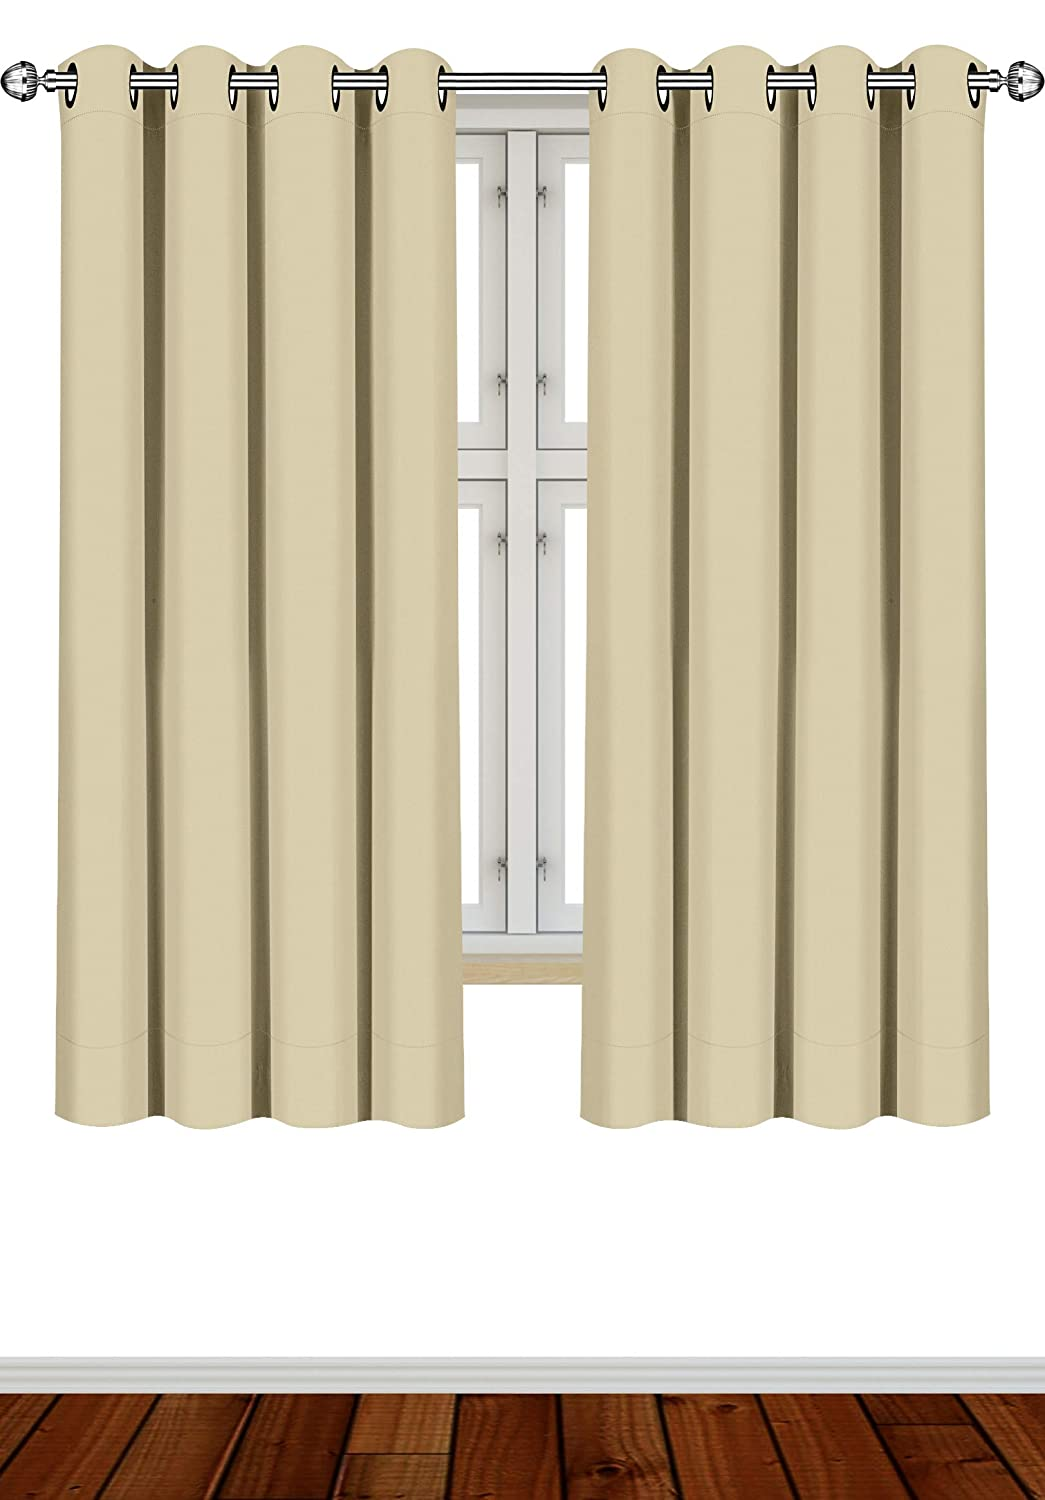 Utopia Bedding 2 Panels Eyelet Blackout Curtains Thermal Insulated for Bedroom, W69 x L55 Inches, Beige